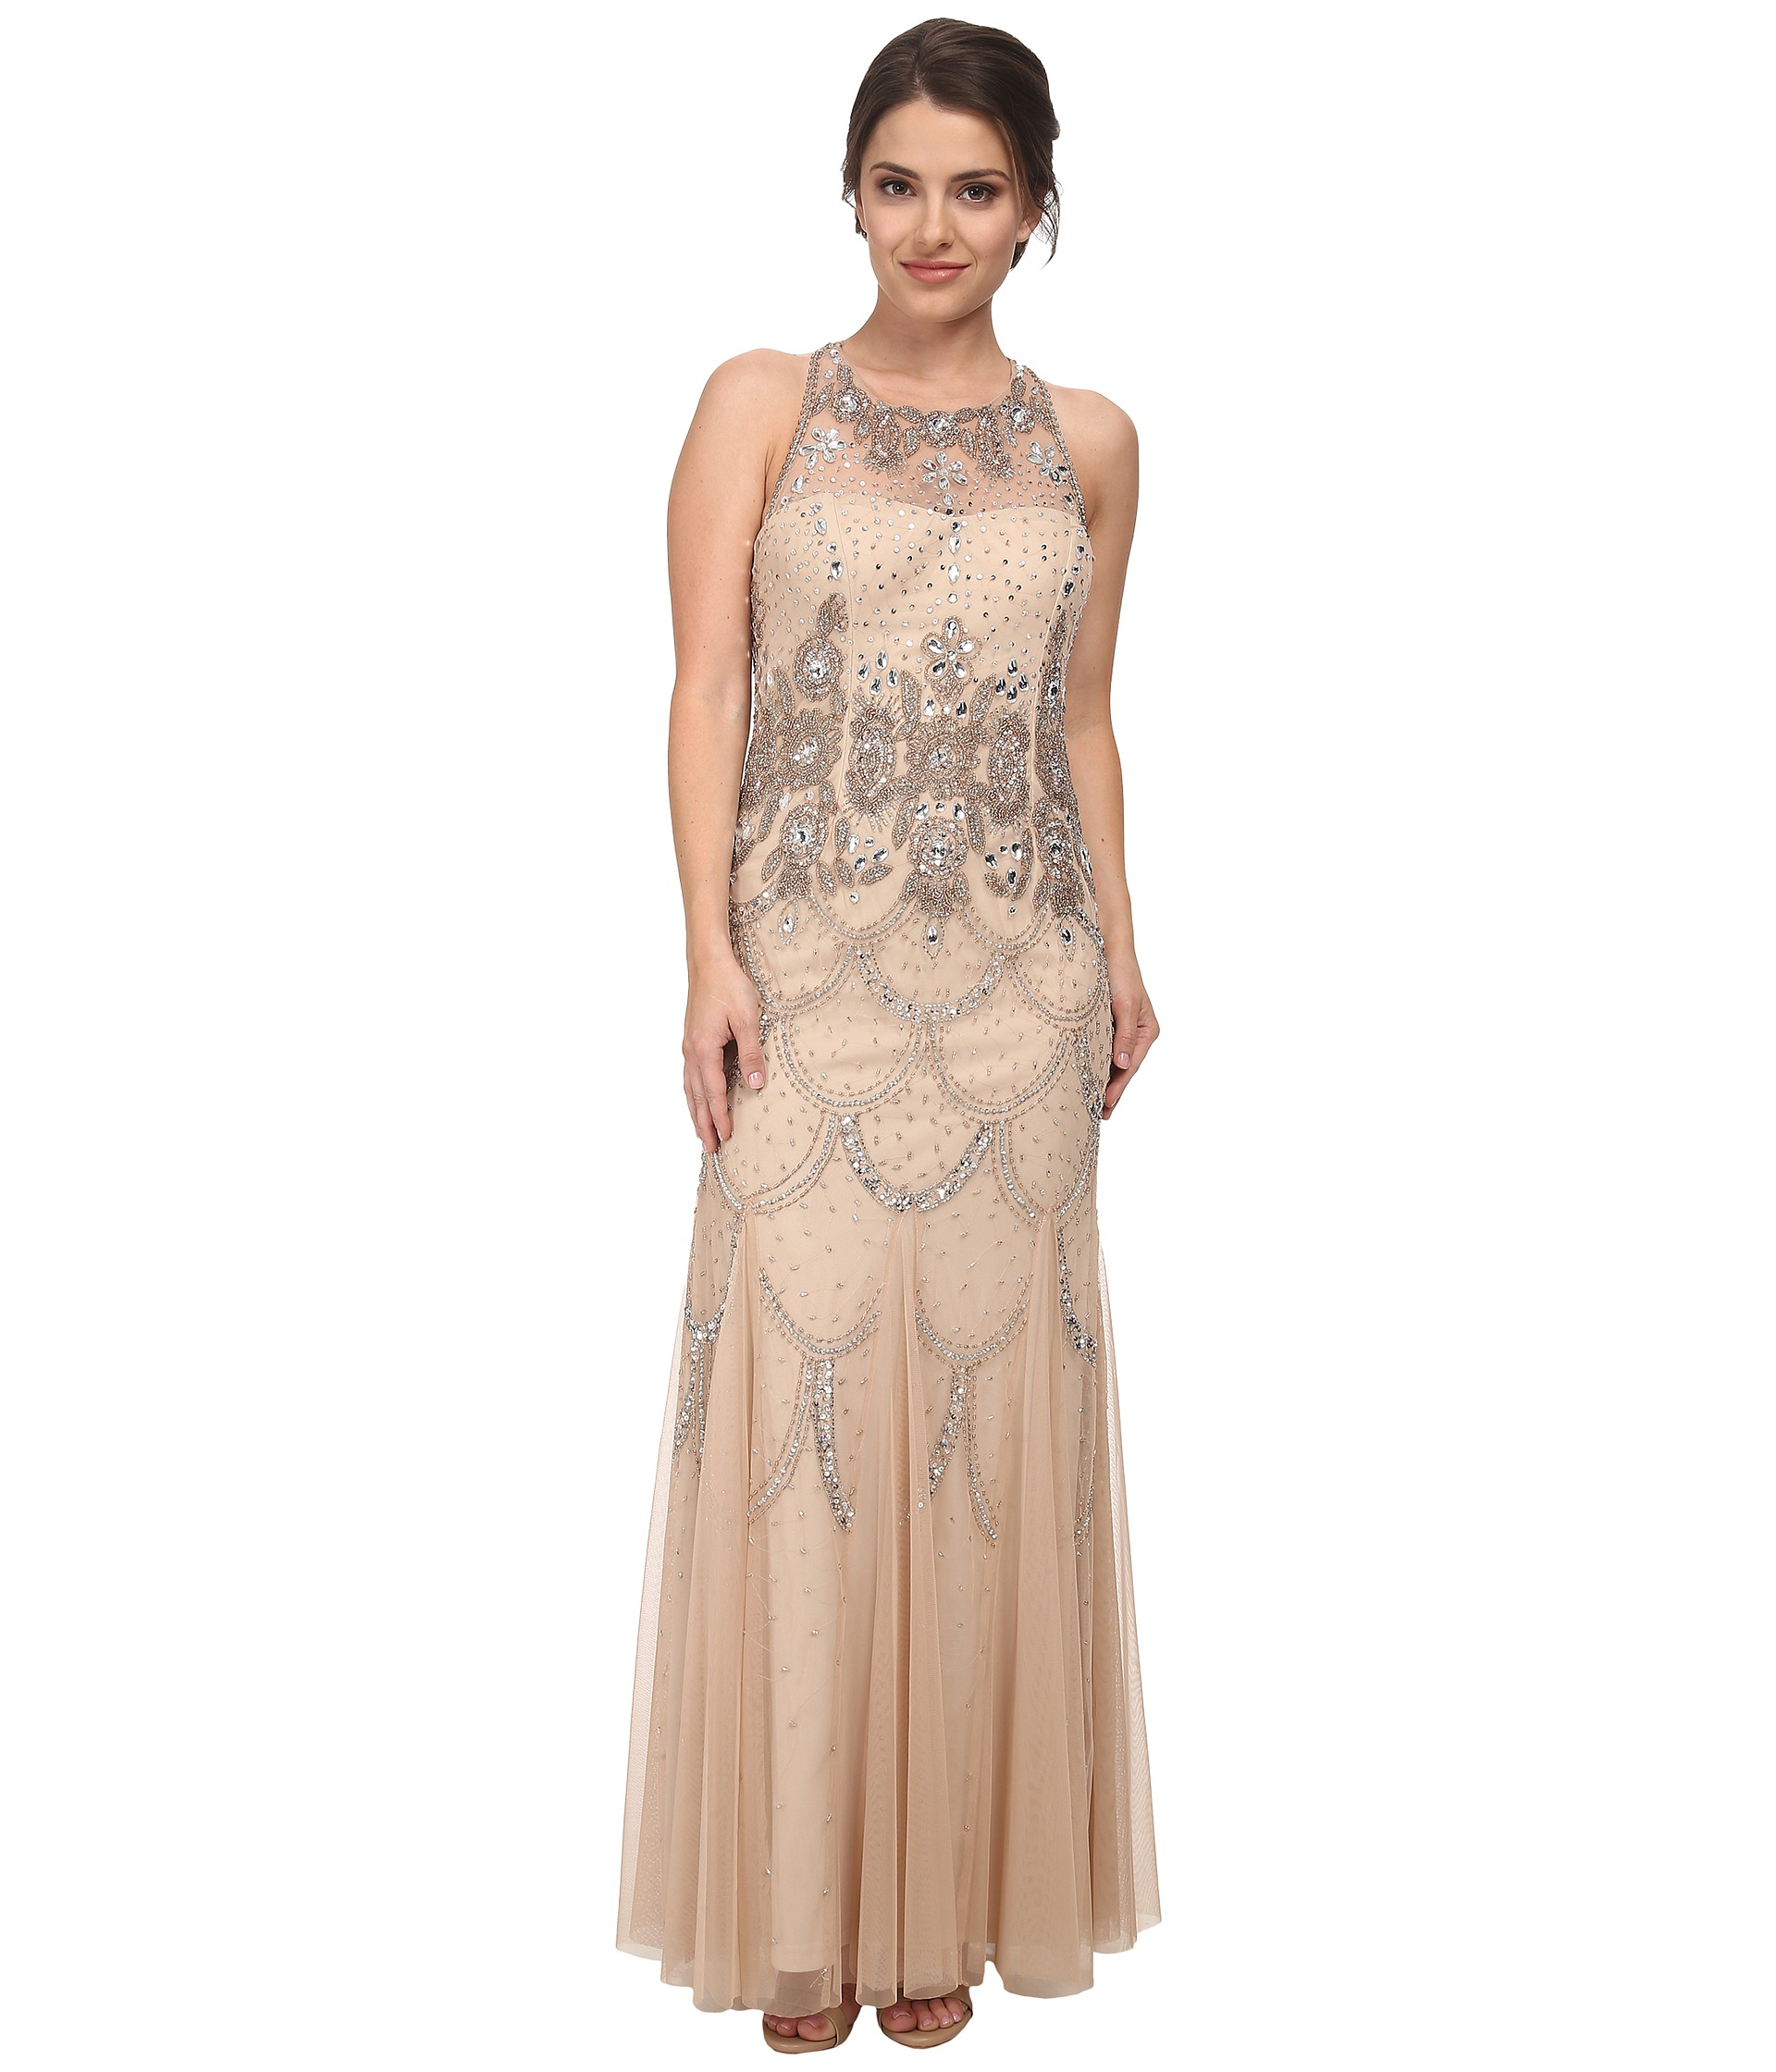 976d6a408492 Adrianna Papell Halter Fully Beaded Gown in Metallic - Lyst